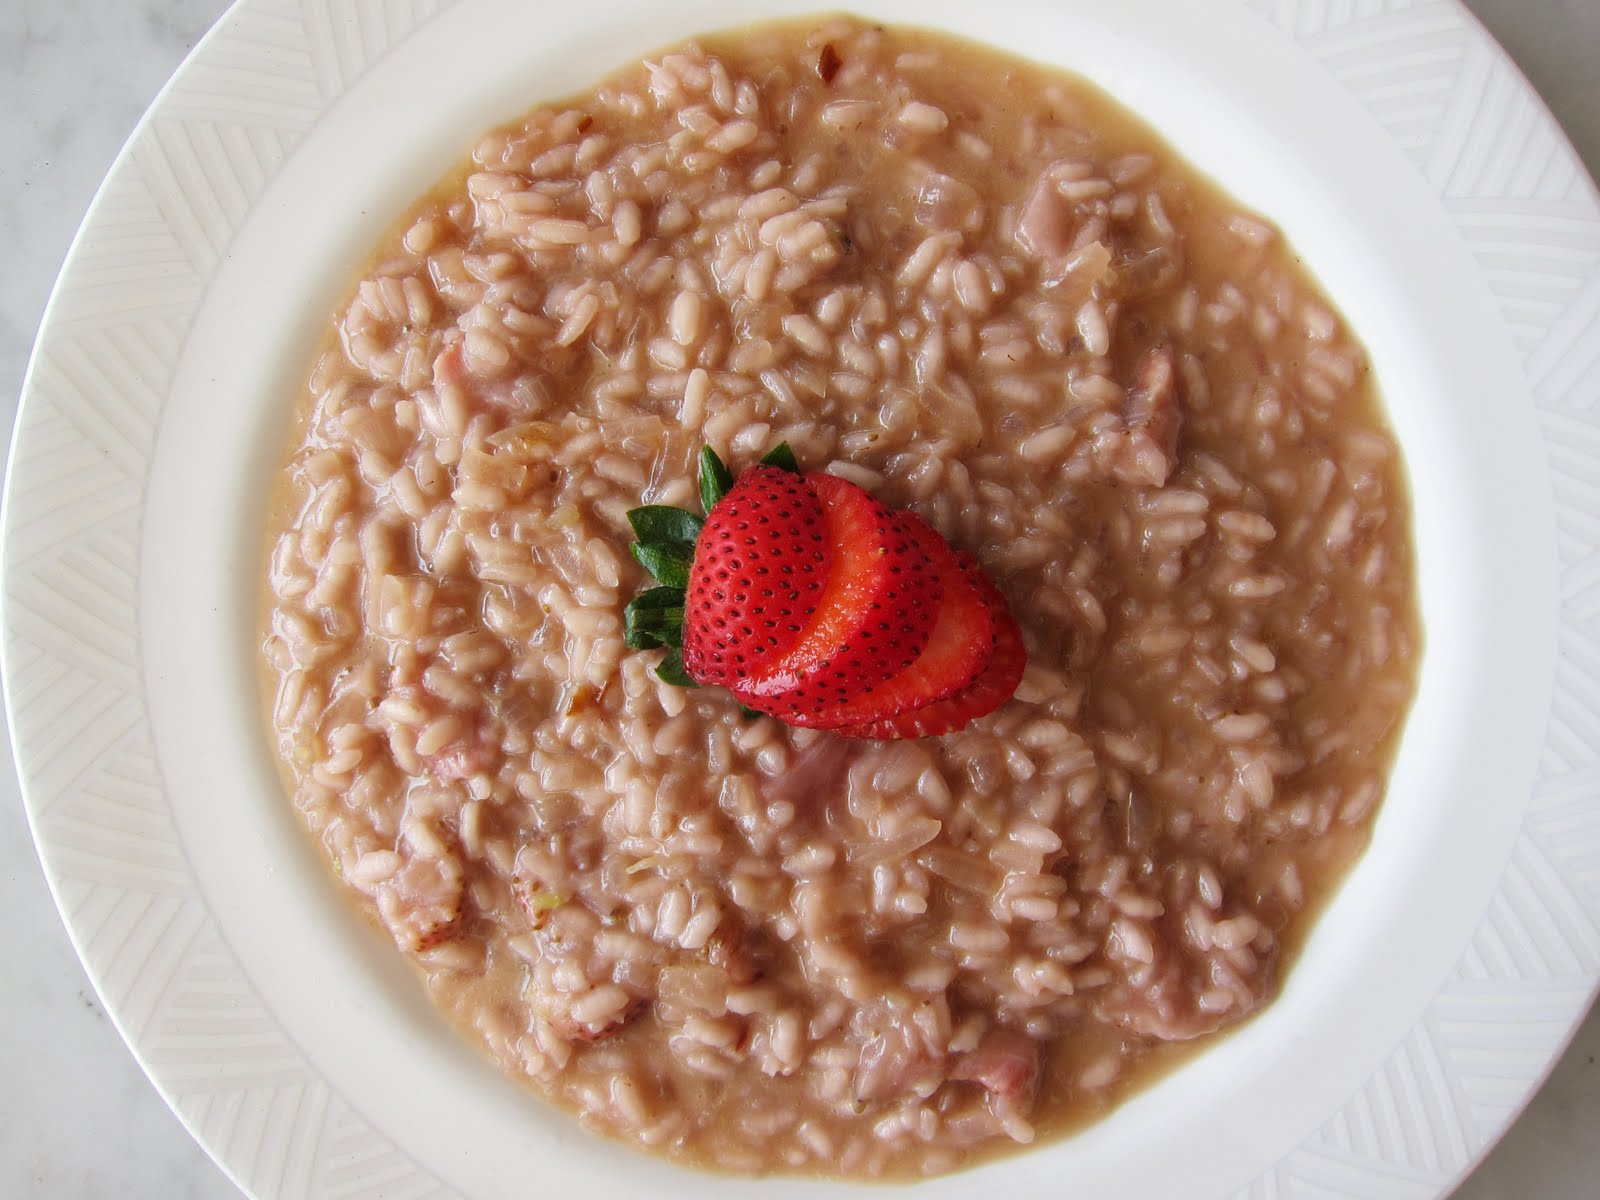 Kitchen comforts: Strawberry Risotto with Strawberry Smoothie